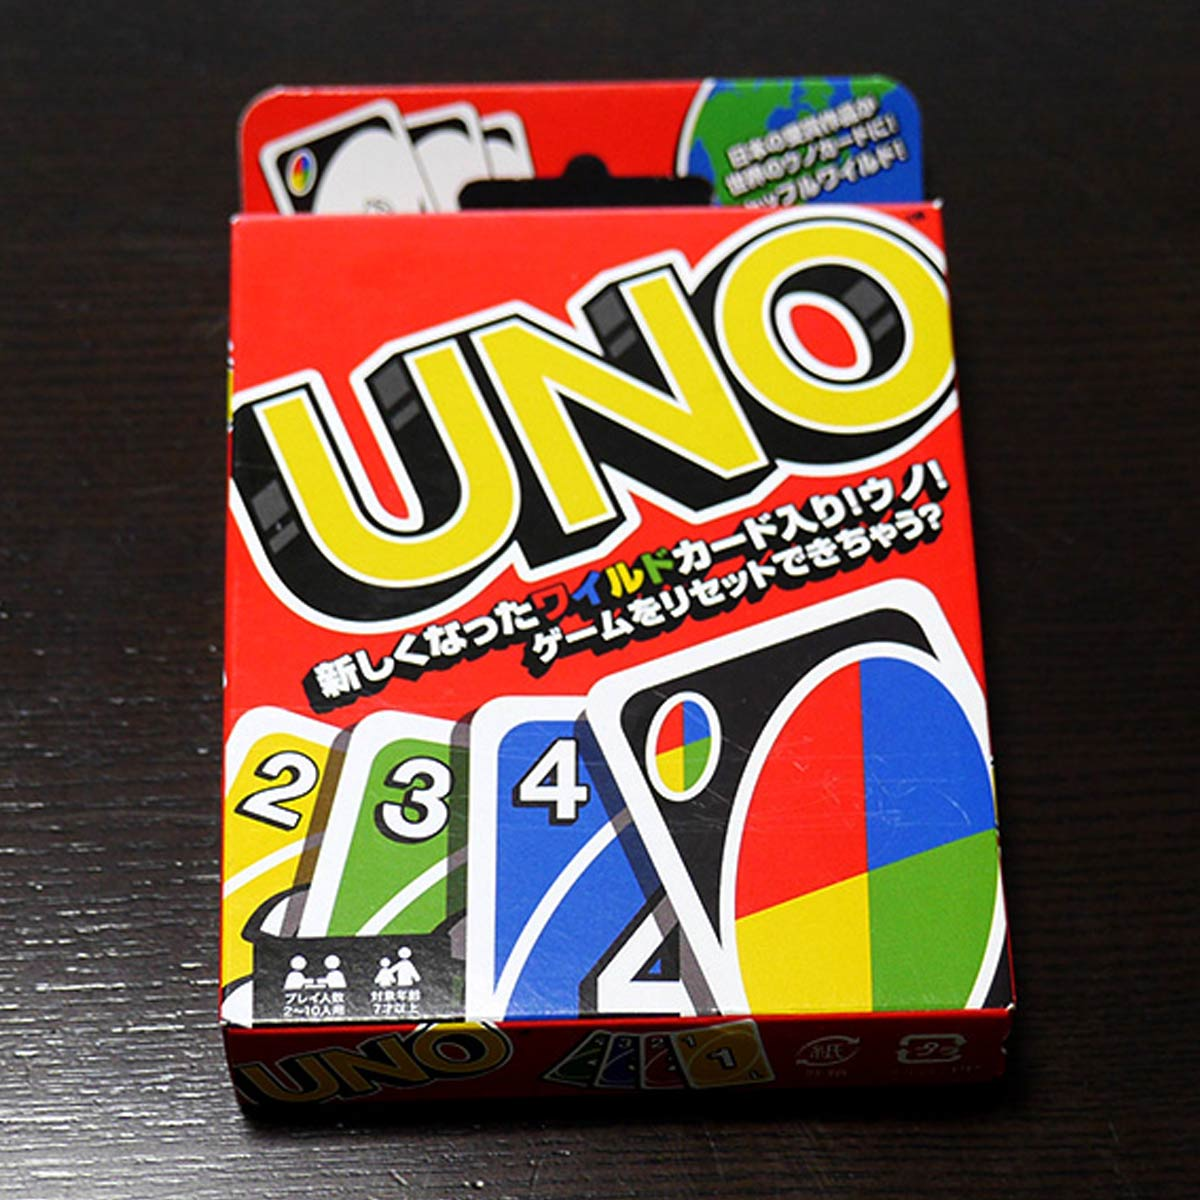 「UNO」の正しいルール、知ってる? 説明書を熟読したら知らないルールだらけだった!